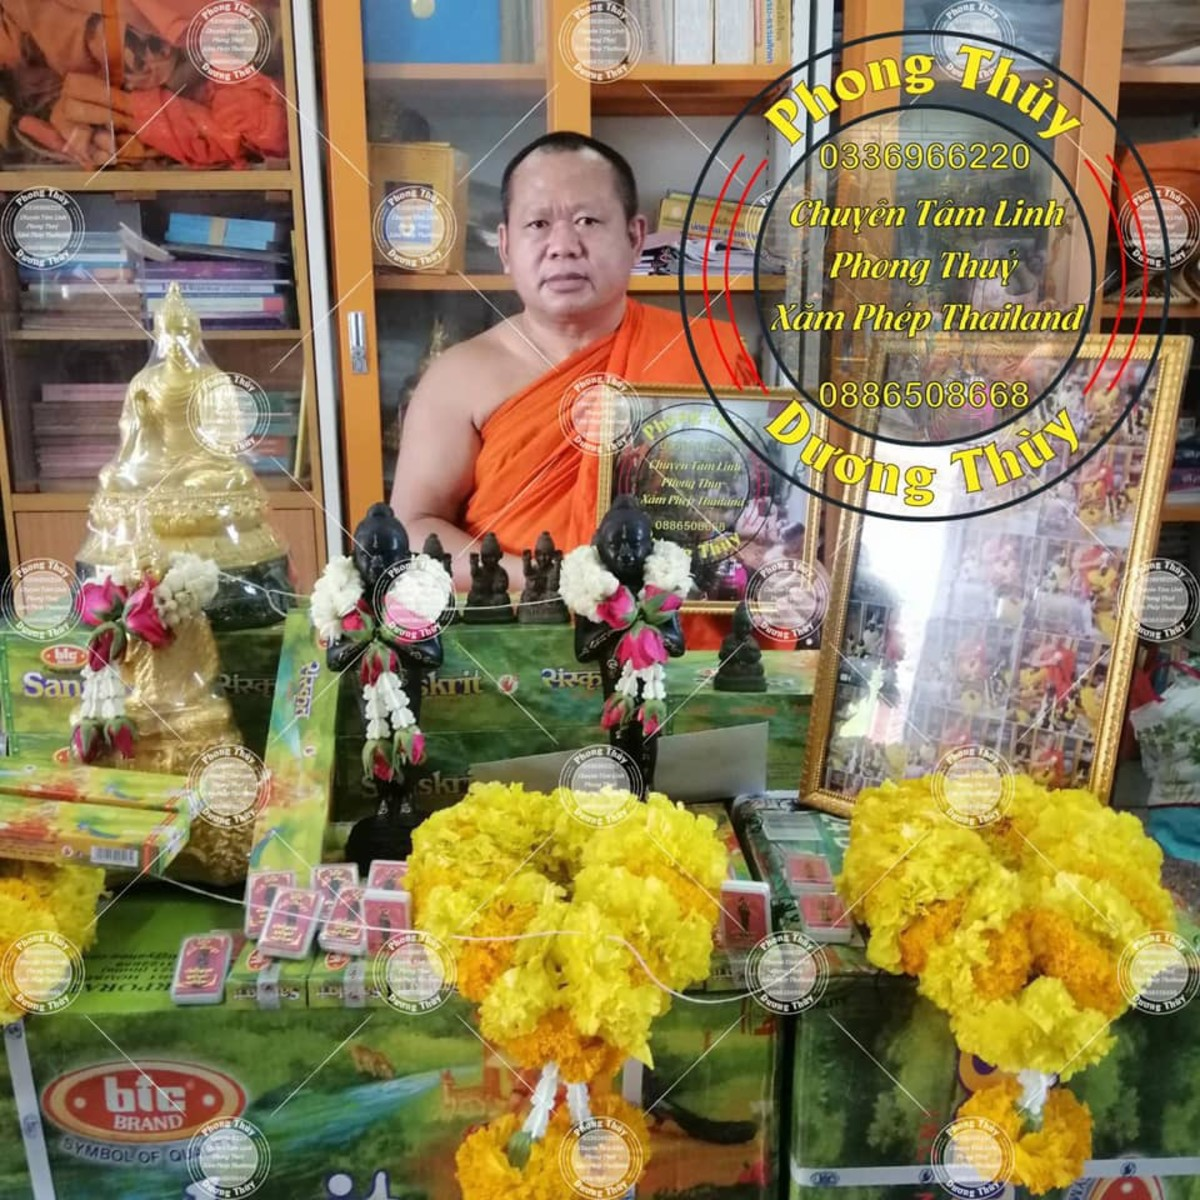 Thailand - a Buddhist Country With Its Own Unique Cultural Identity